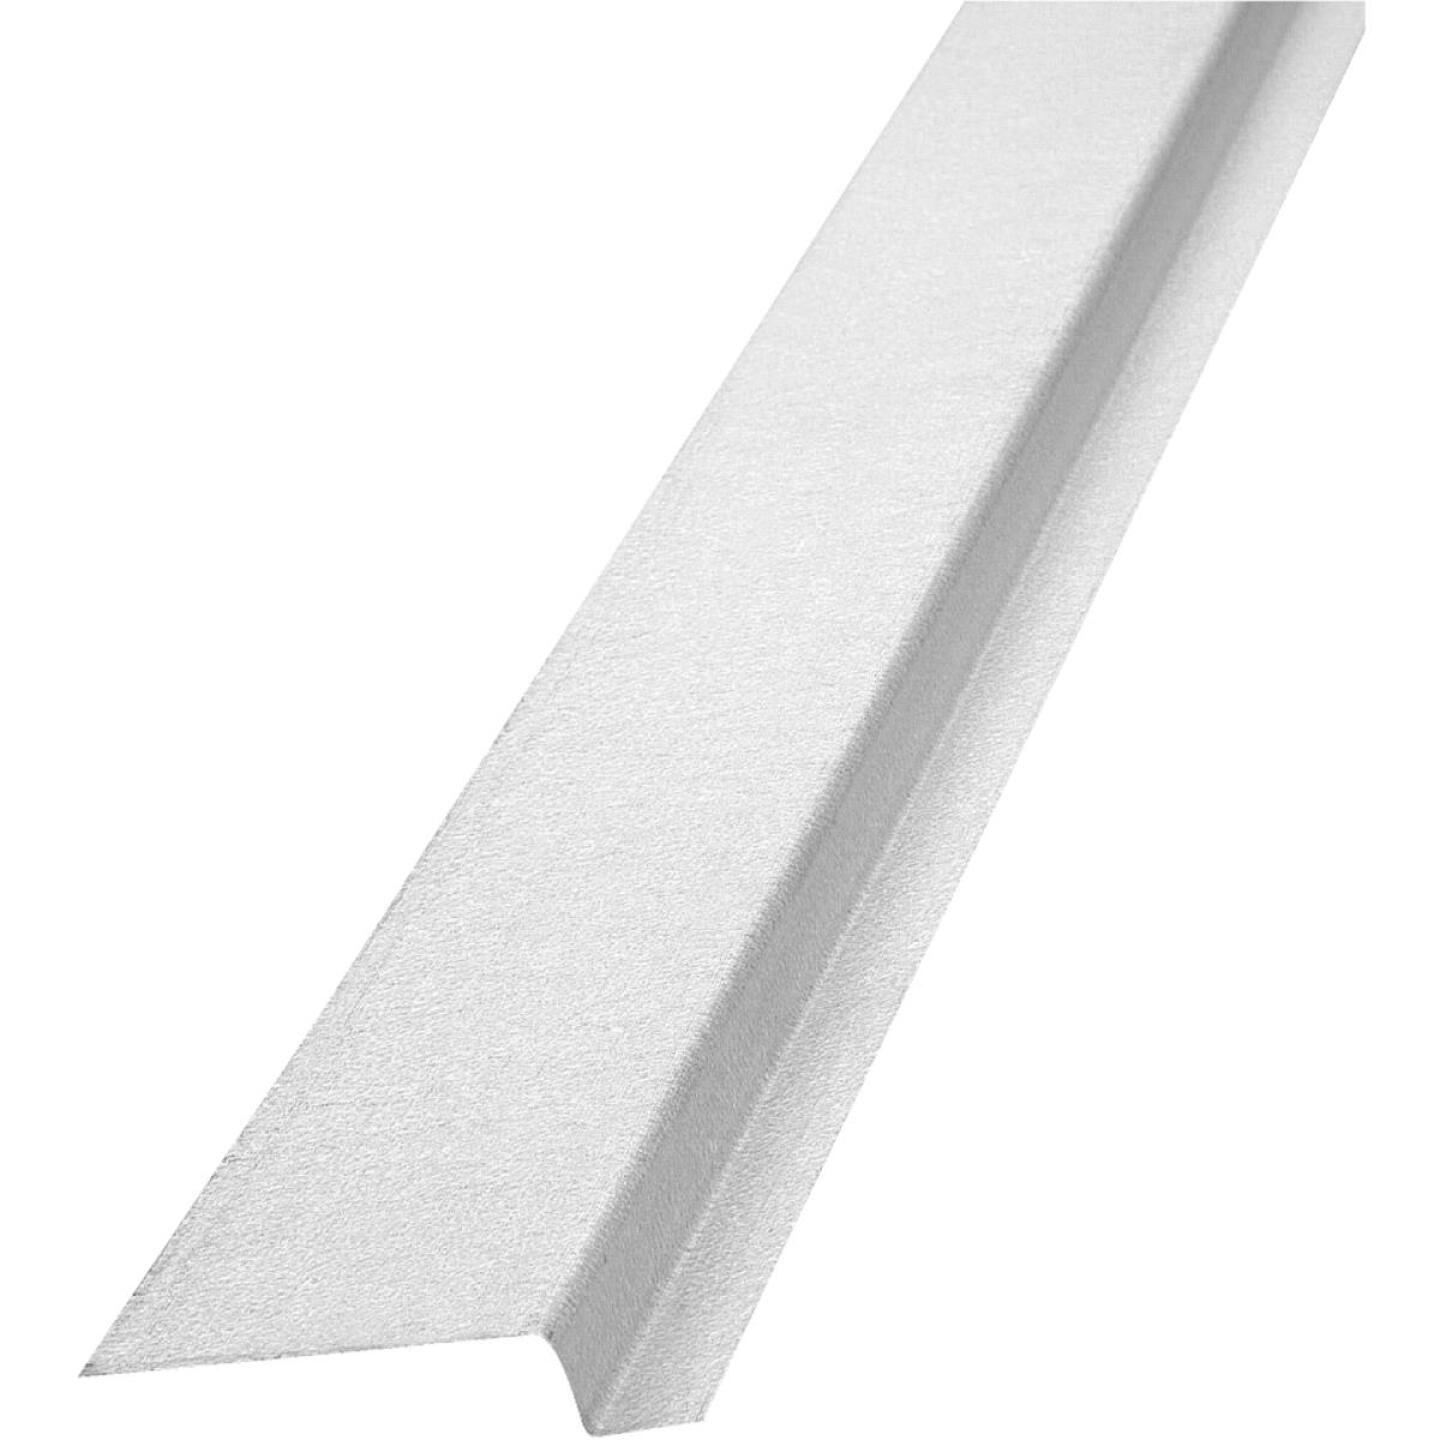 NorWesco 3/8 In. x 1/2 In. x 2-1/8 In. x 10 Ft. Mill Galvanized Ply Edge Z-Style Flashing Image 1